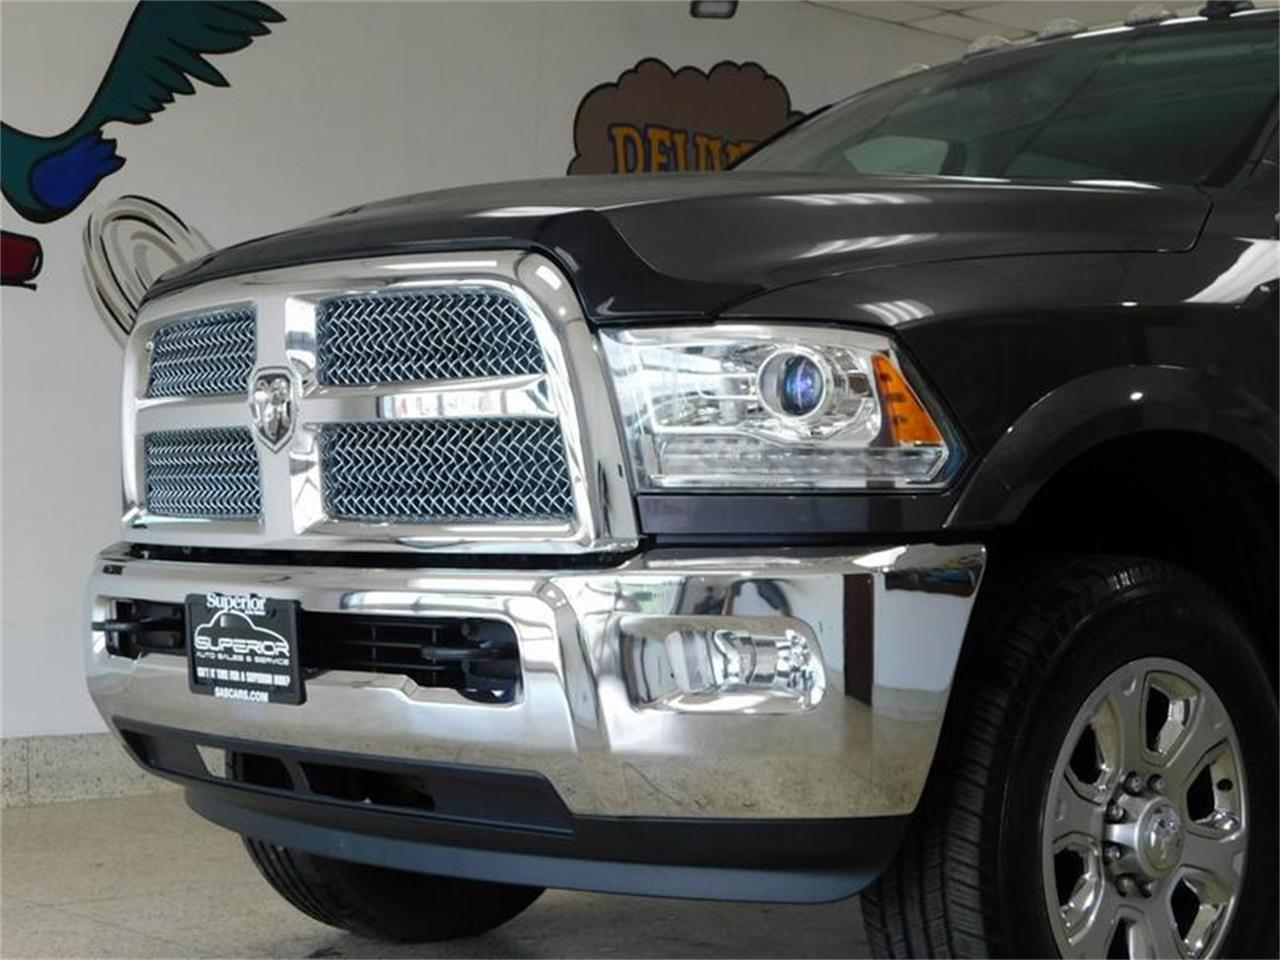 2015 Dodge Ram 2500 (CC-1268015) for sale in Hamburg, New York